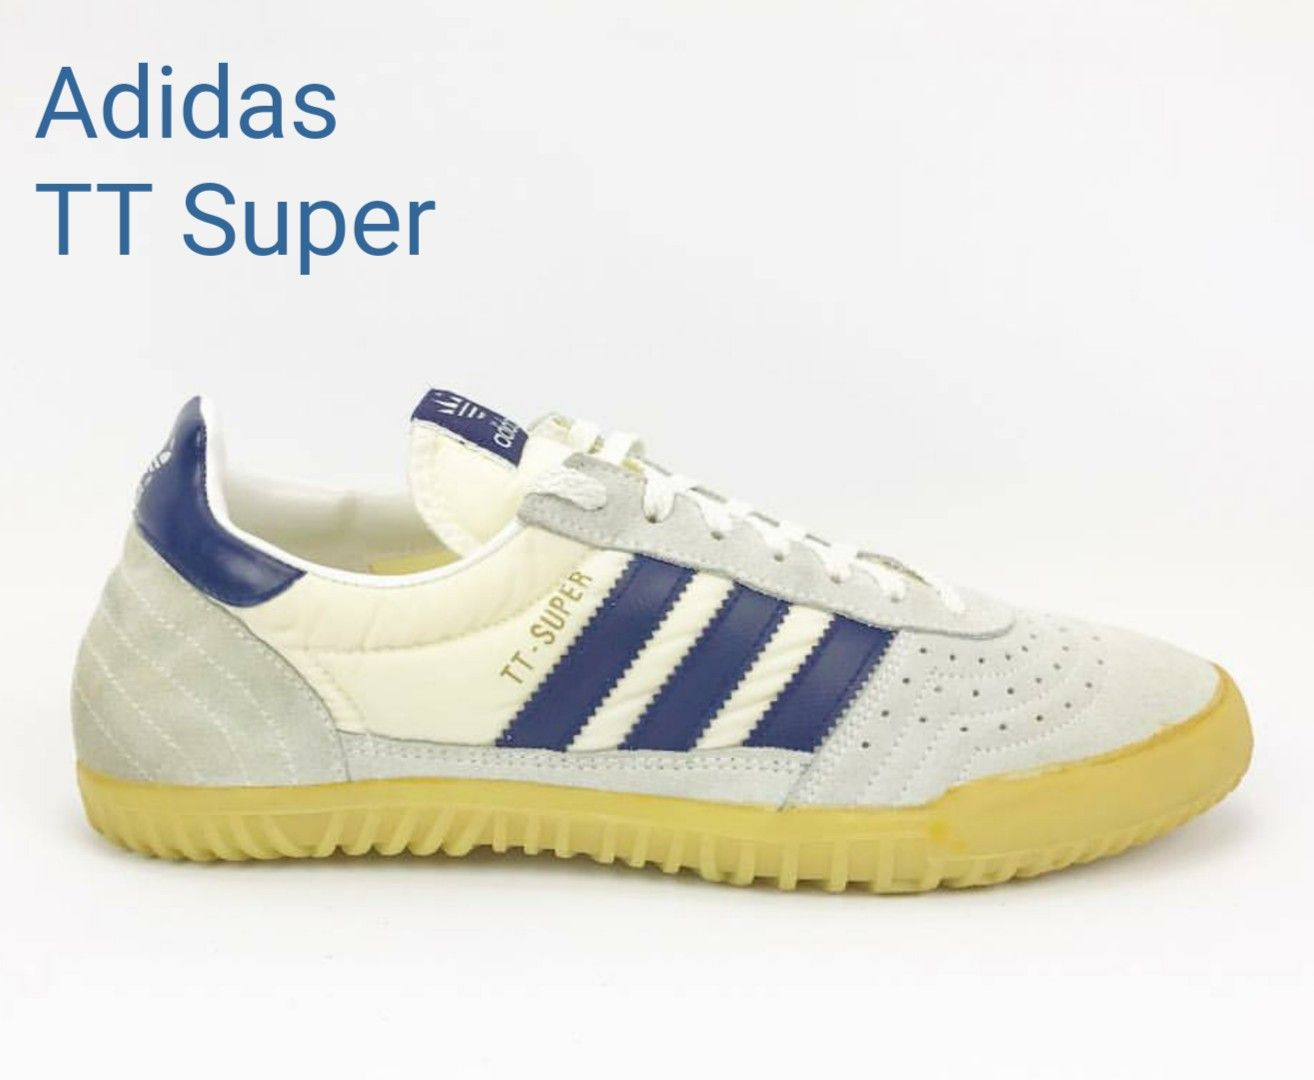 Vintage Philippine Made Adidas Tt Super From 1986 Sneakers